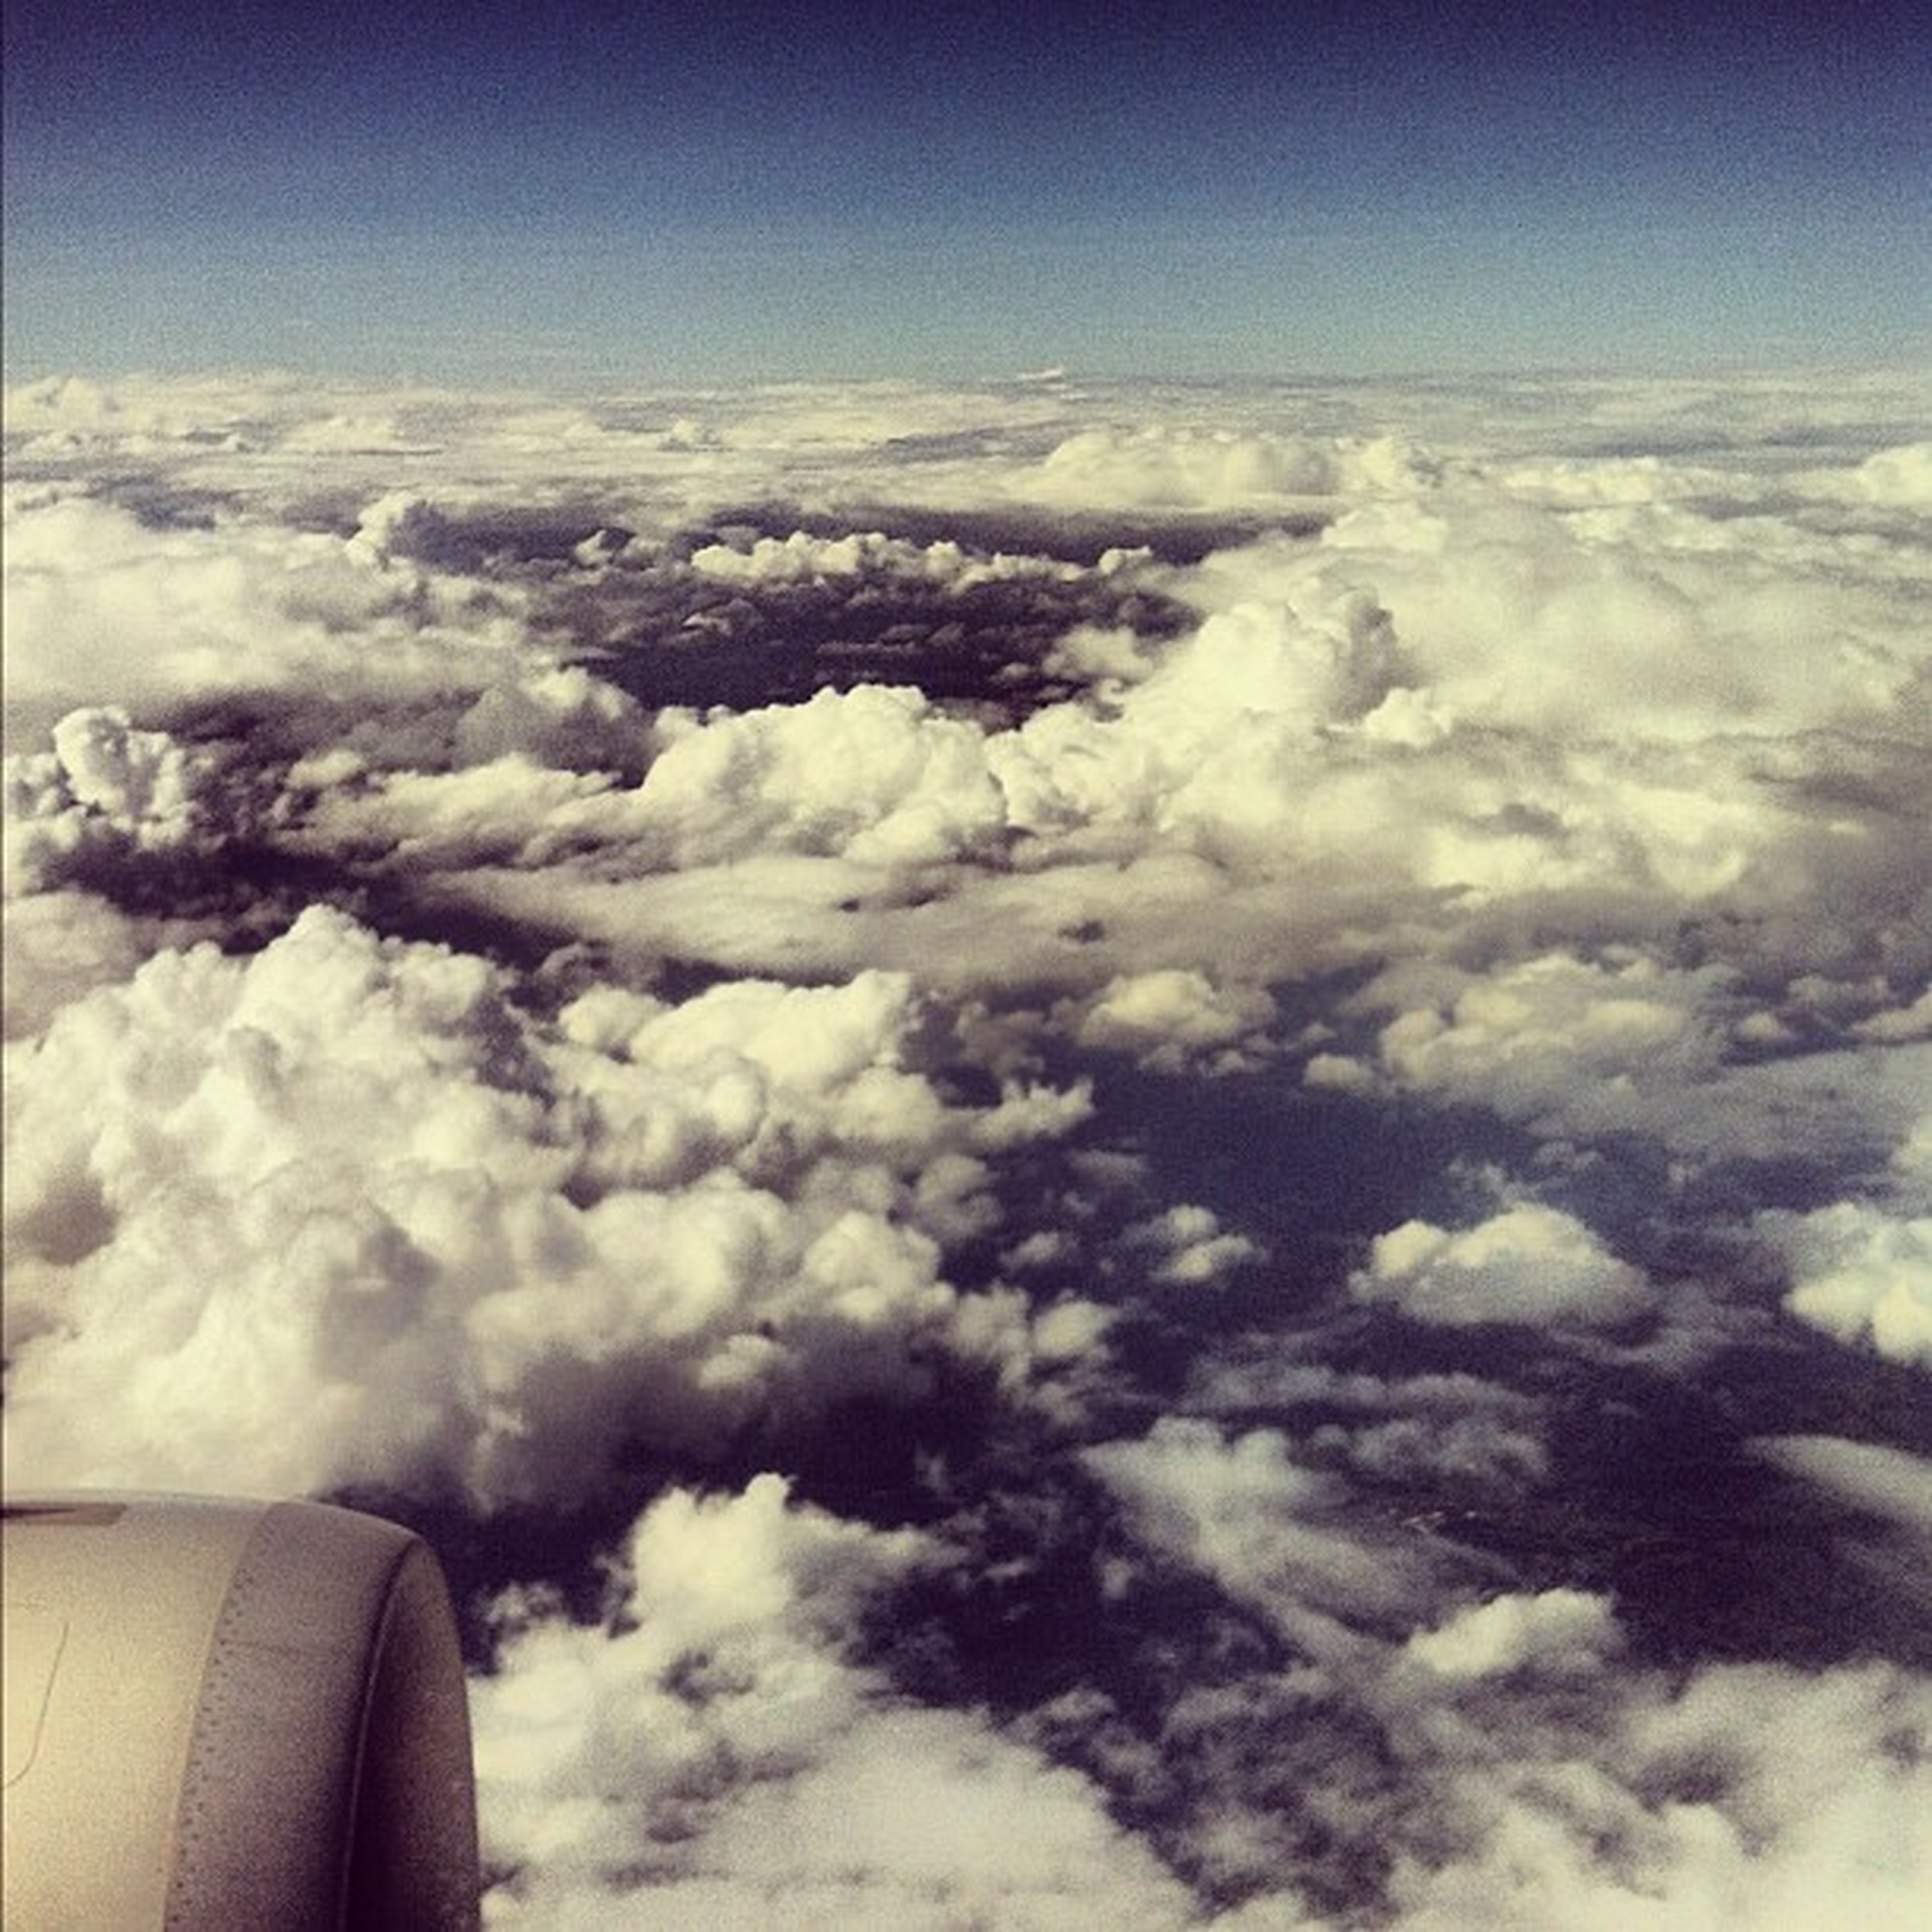 airplane, air vehicle, aerial view, sky, aircraft wing, cloud - sky, cloudscape, transportation, mode of transport, part of, flying, scenics, beauty in nature, cropped, cloud, nature, journey, landscape, cloudy, travel